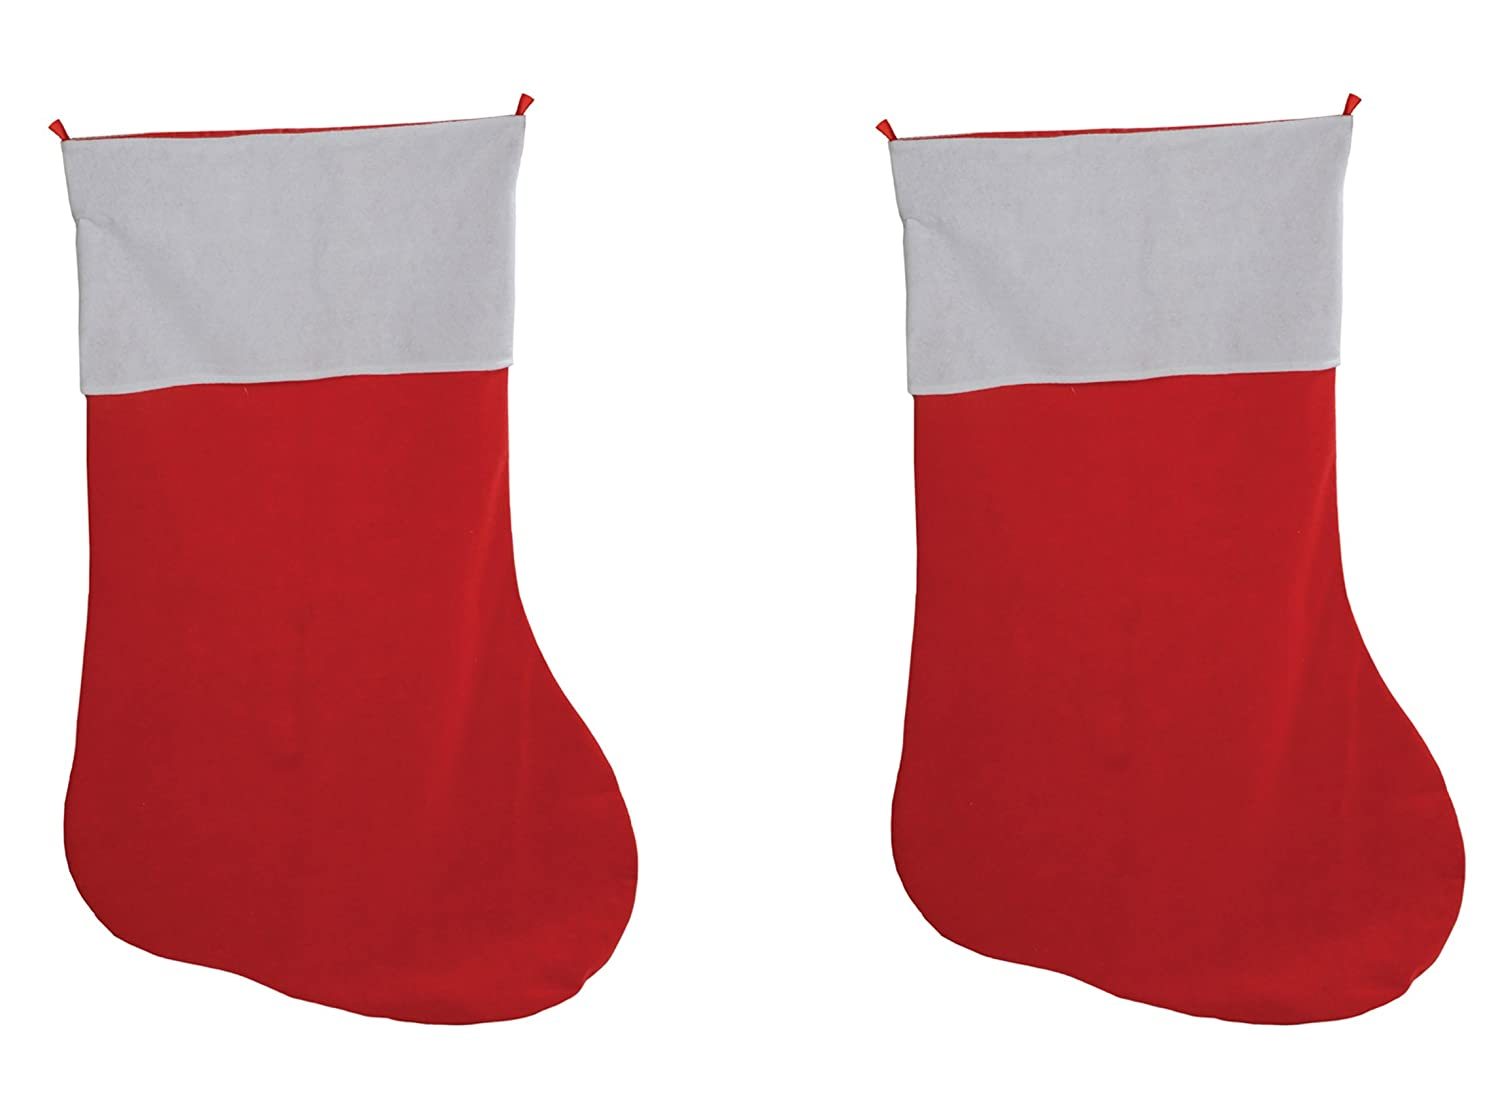 Beistle 1-Pack Jumbo Stocking 4-Feet 6-Inch The Beistle Company 20169